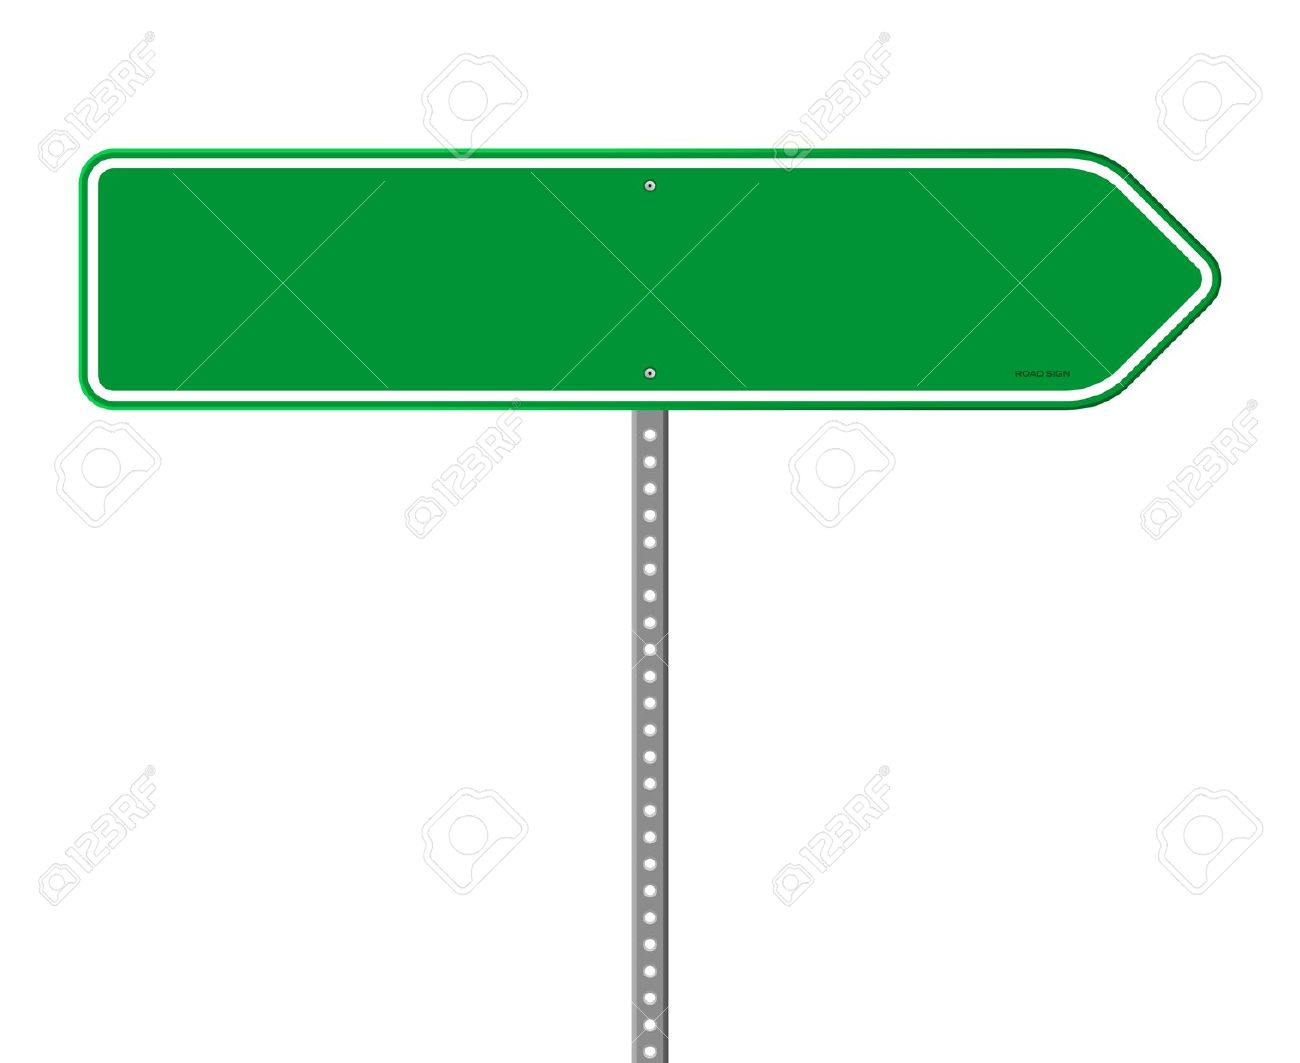 Clipart road with an arrow picture transparent download Road sign arrow clipart - ClipartFox picture transparent download